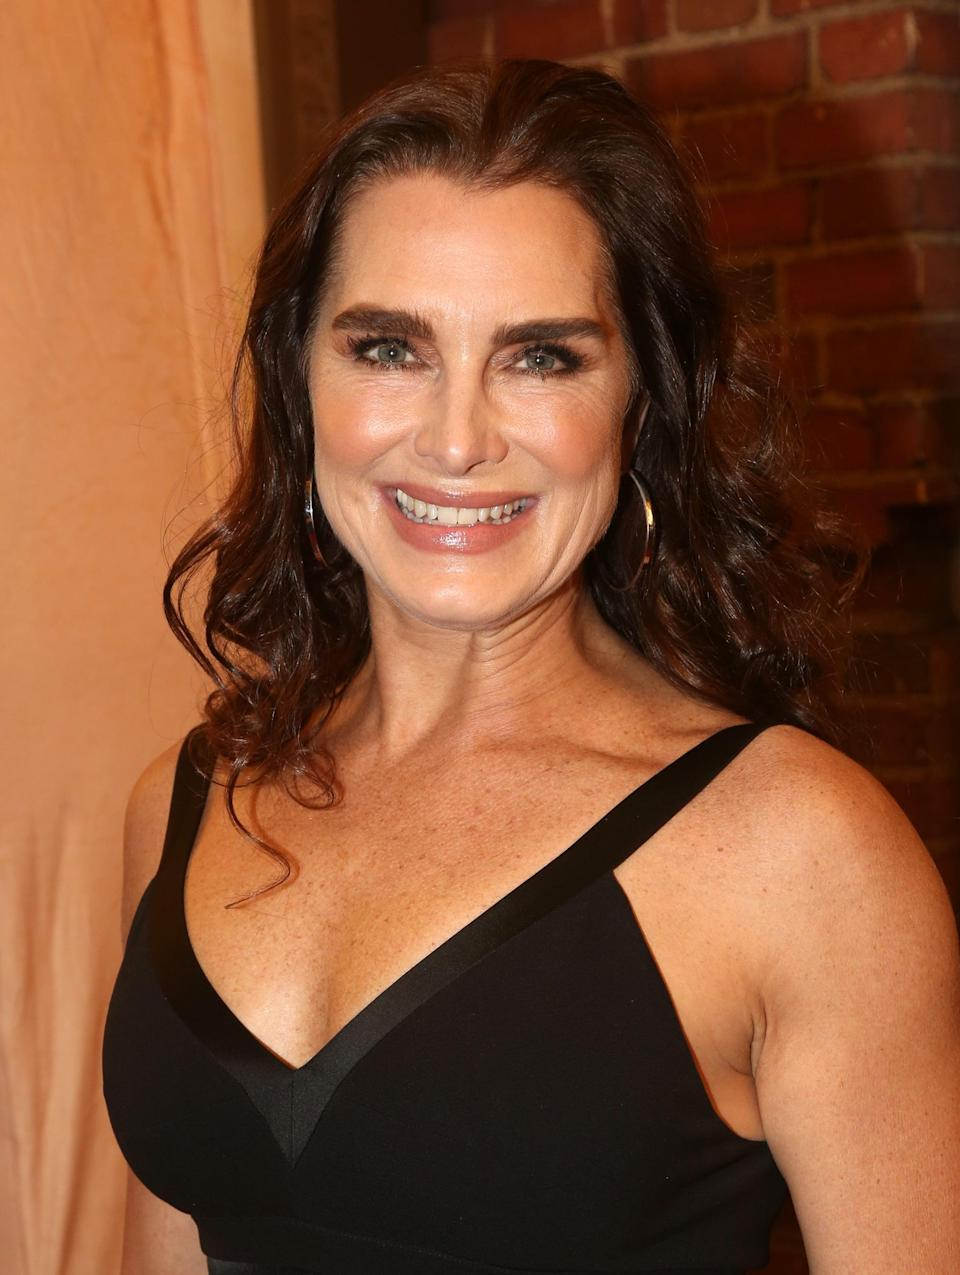 """<p><a class=""""link rapid-noclick-resp"""" href=""""https://www.popsugar.com/Brooke-Shields"""" rel=""""nofollow noopener"""" target=""""_blank"""" data-ylk=""""slk:Brooke Shields"""">Brooke Shields</a> and Cary Elwes star in this holiday rom-com, which follows a wealthy American author who has her eye on a castle in Scotland . . . but unfortunately, the Scottish Duke who owns it is reluctant to sell to a foreigner. </p> <p><strong>When it's available: </strong>TBA</p>"""